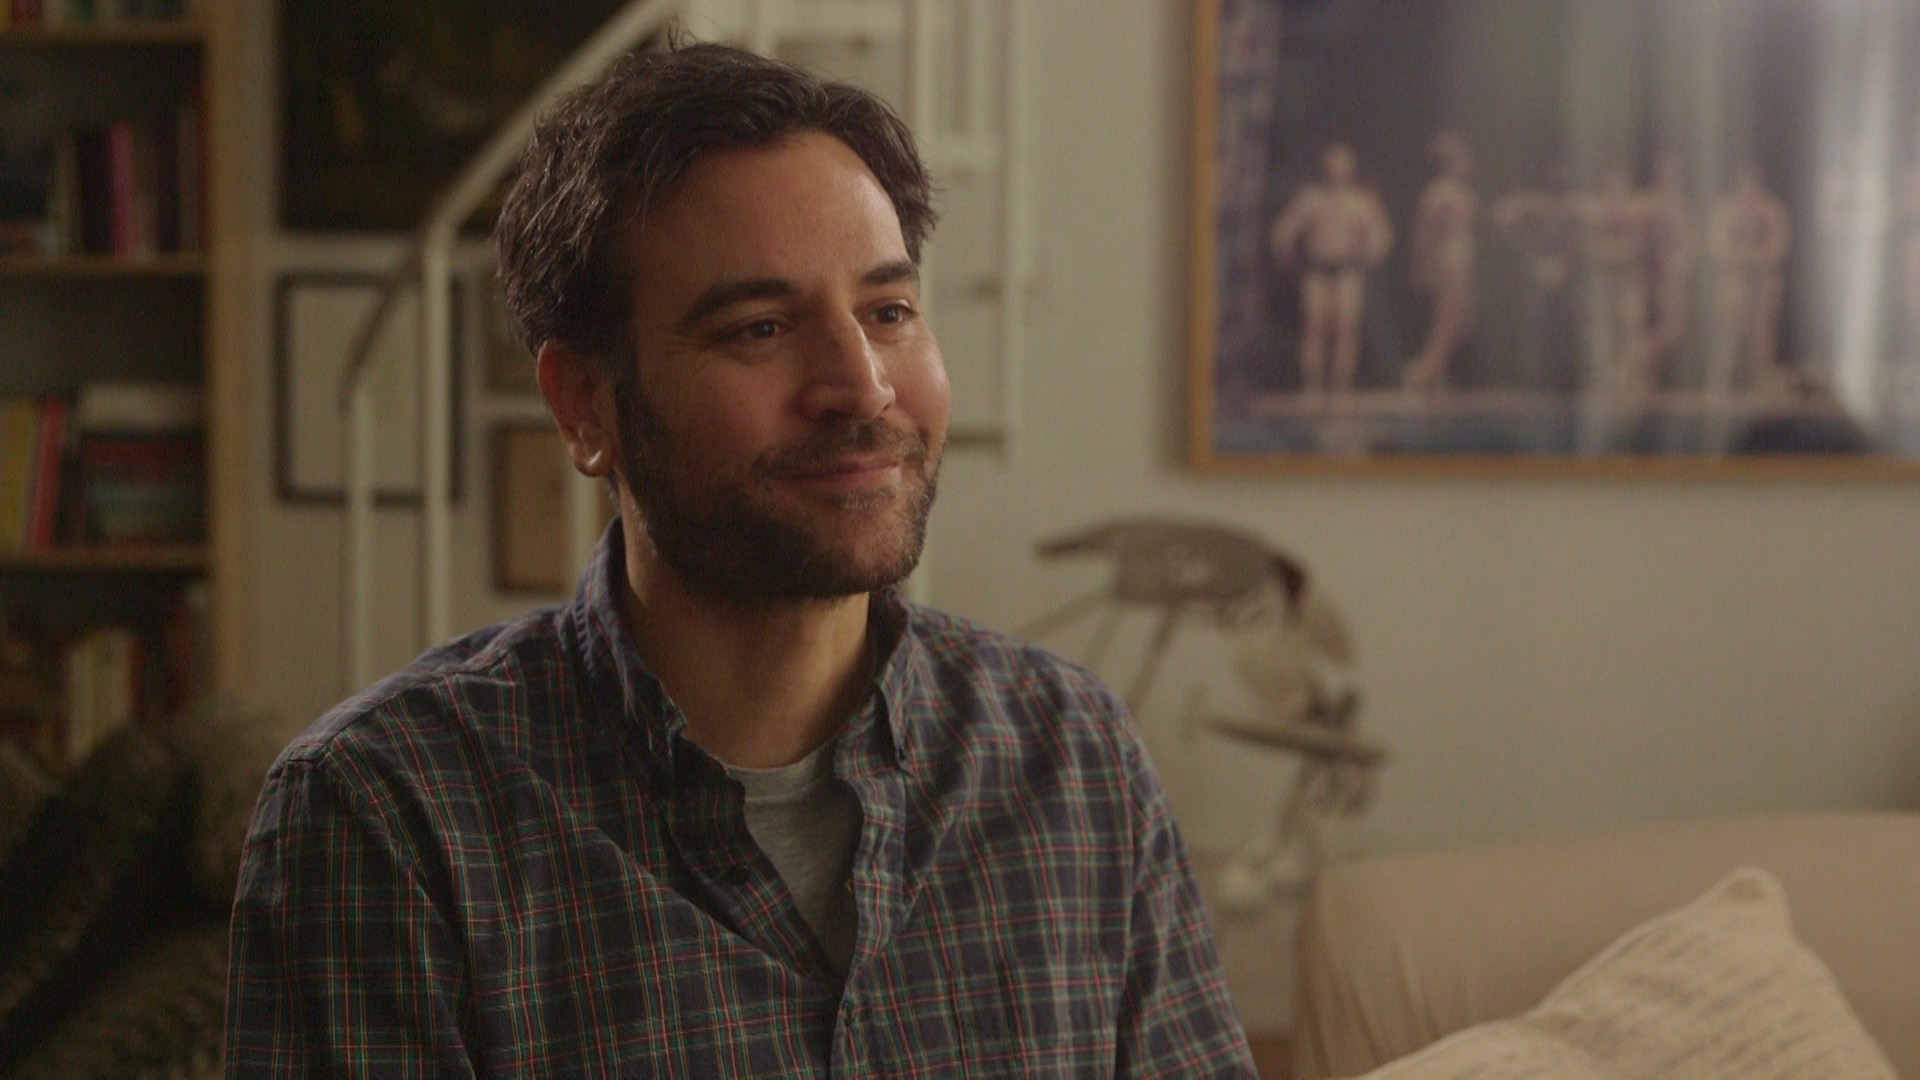 Actor-Writer-Director-Musician - Josh Radnor understood quickly that fame and fortune wouldn't make him happy.Season 3, Episode 10